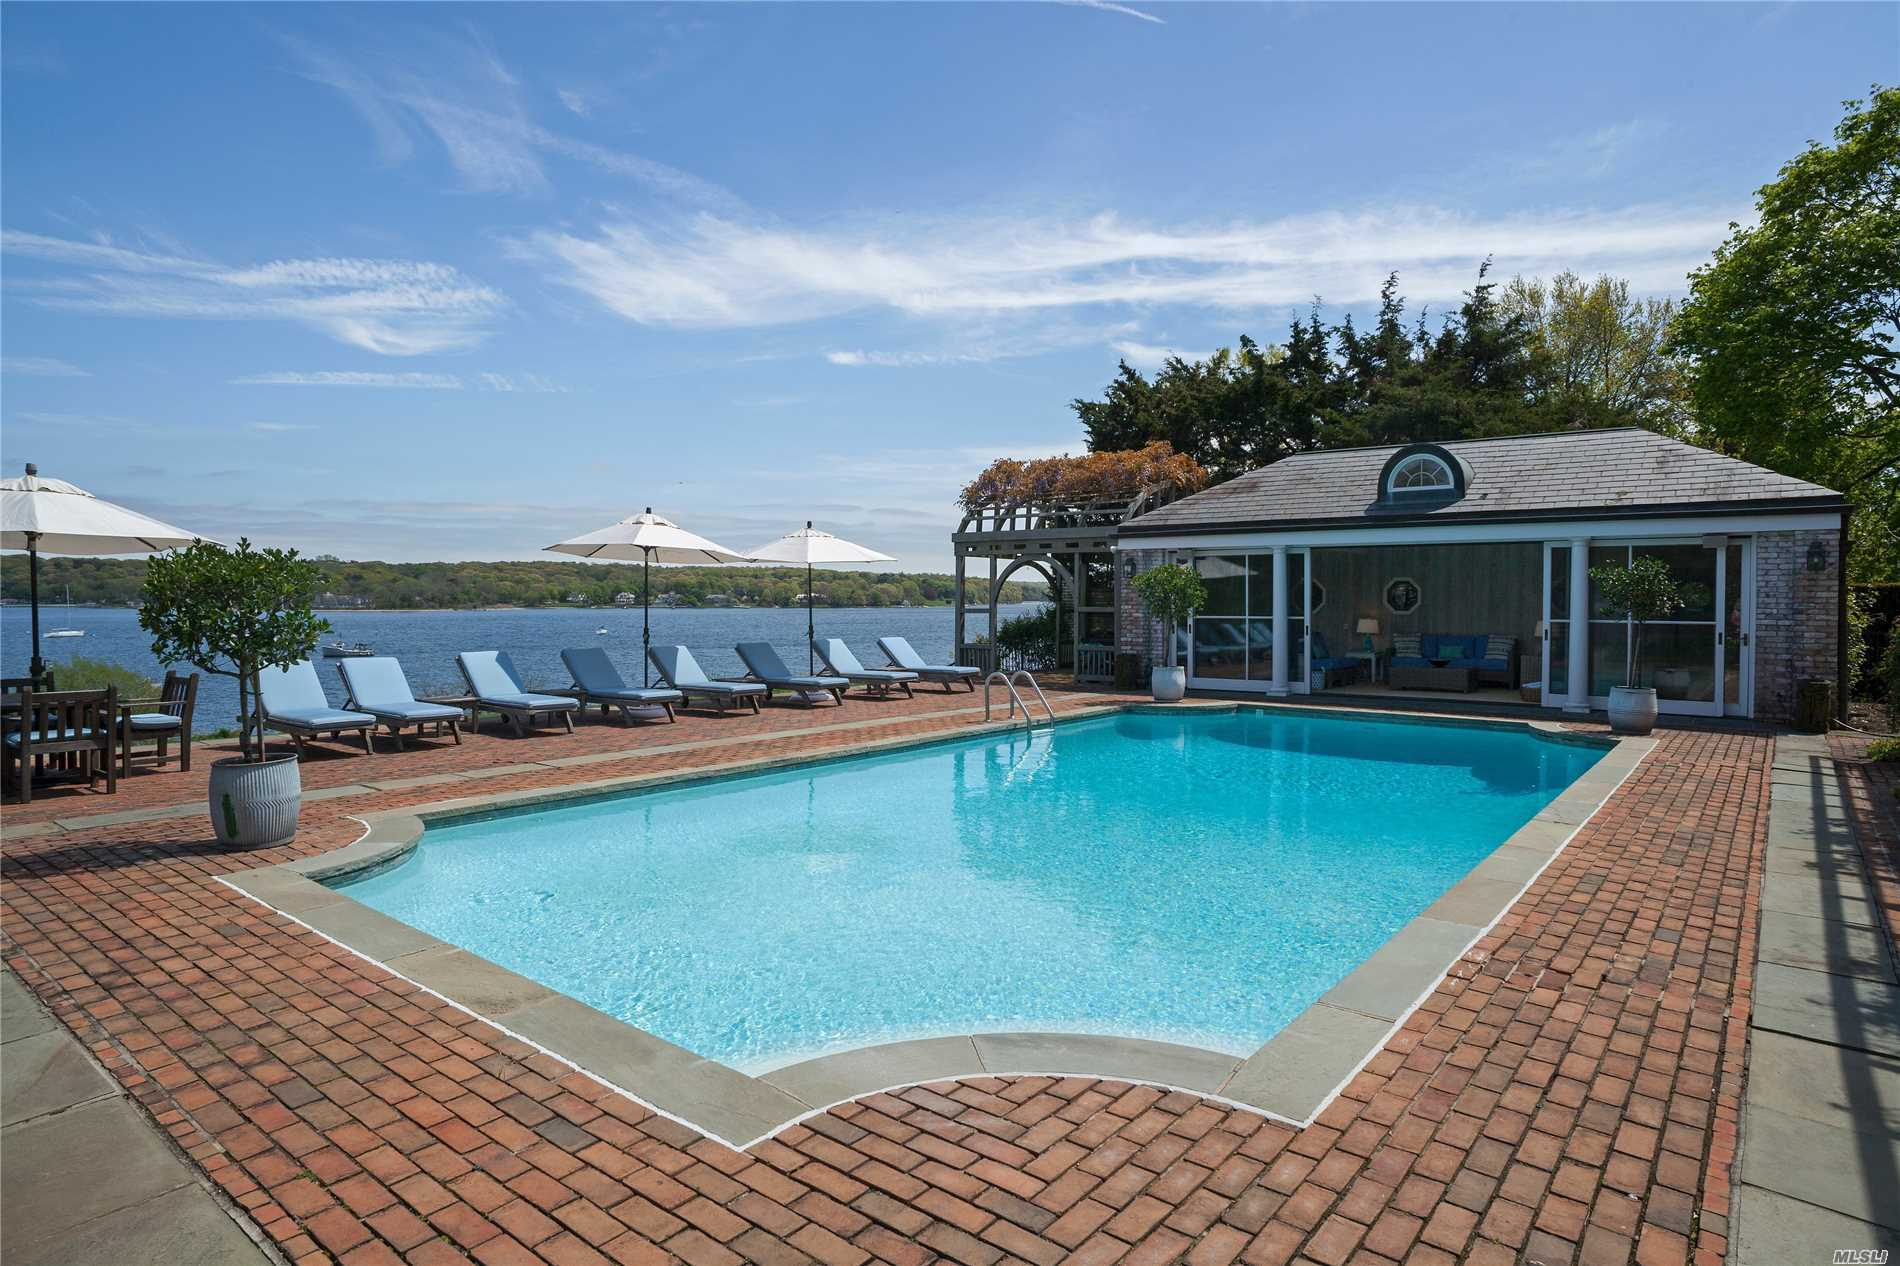 This Premiere Centre Island Compound Is The Perfect Hampton's Alternative! A Majestic 653' Waterfront Estate With A 306' Long Dock On Oyster Bay. Amazing Views Of Oyster Bay Harbor, Lloyd Harbor, And Cove Neck. Three Homes On An Impeccably Manicured 7.26 Acres. Main House Had A Complete Renovation In 2010. Guest House And Cottage Each With Four Bedrooms. Dock, Pool, Pool House, Har-Tru Tennis Ct, Putting Green, And Six And Two Car Garages. A Short Drive From Manhattan.